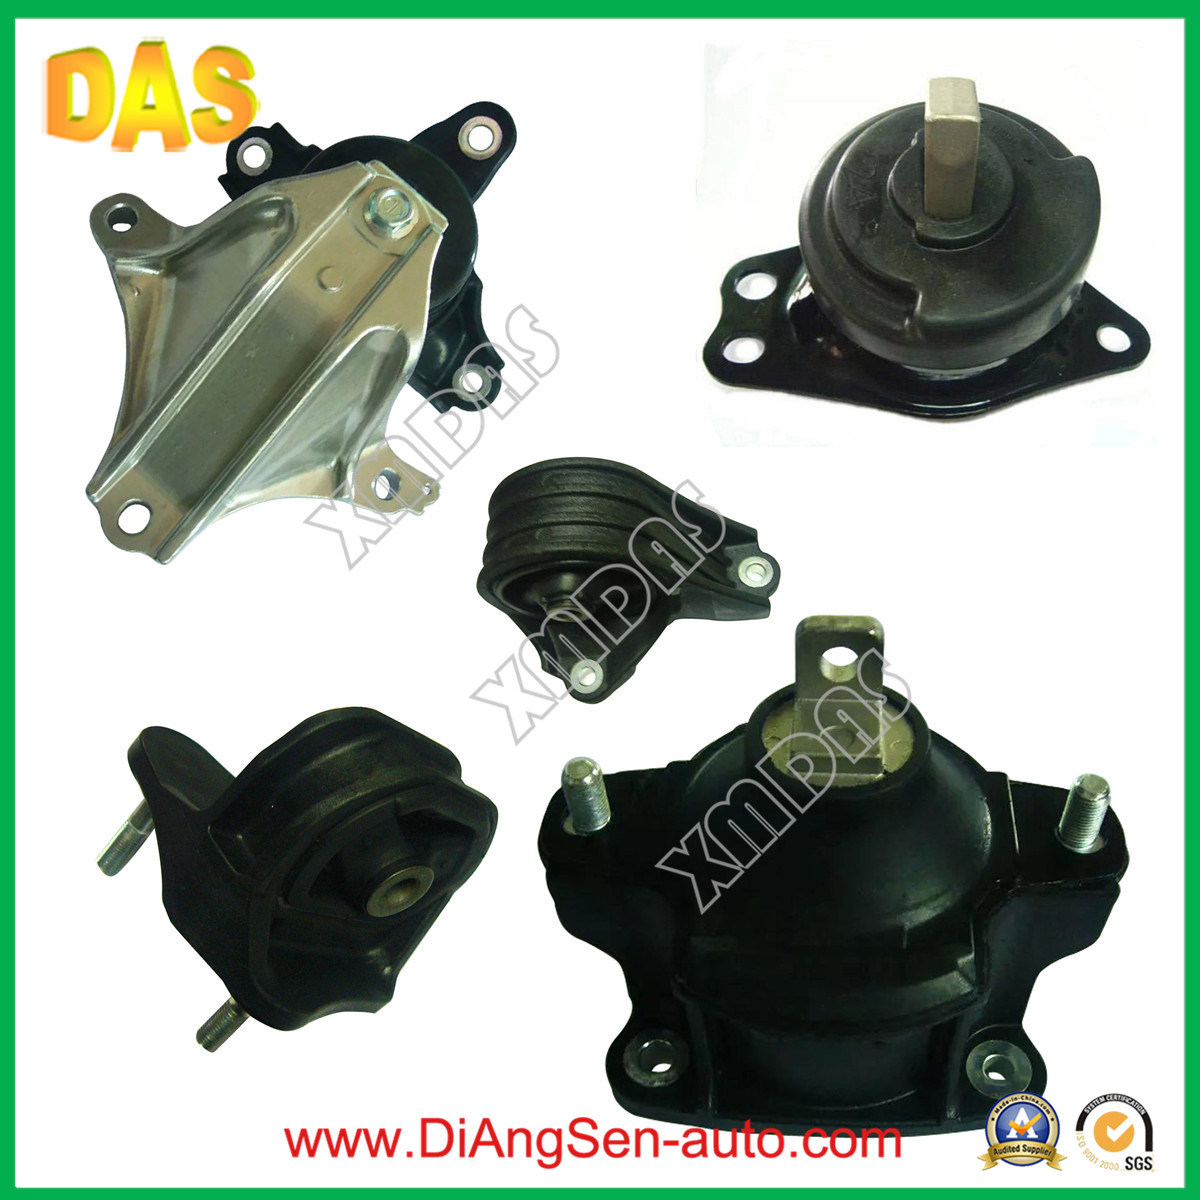 Car Auto Spare Parts, Engine Rubber Mounting for Honda Accord 2013 (50810-T2F-A01, 50820-T2F-A01, 50830-T2J-A01, 50850-T2F-A01, 50870-T2F-A01)